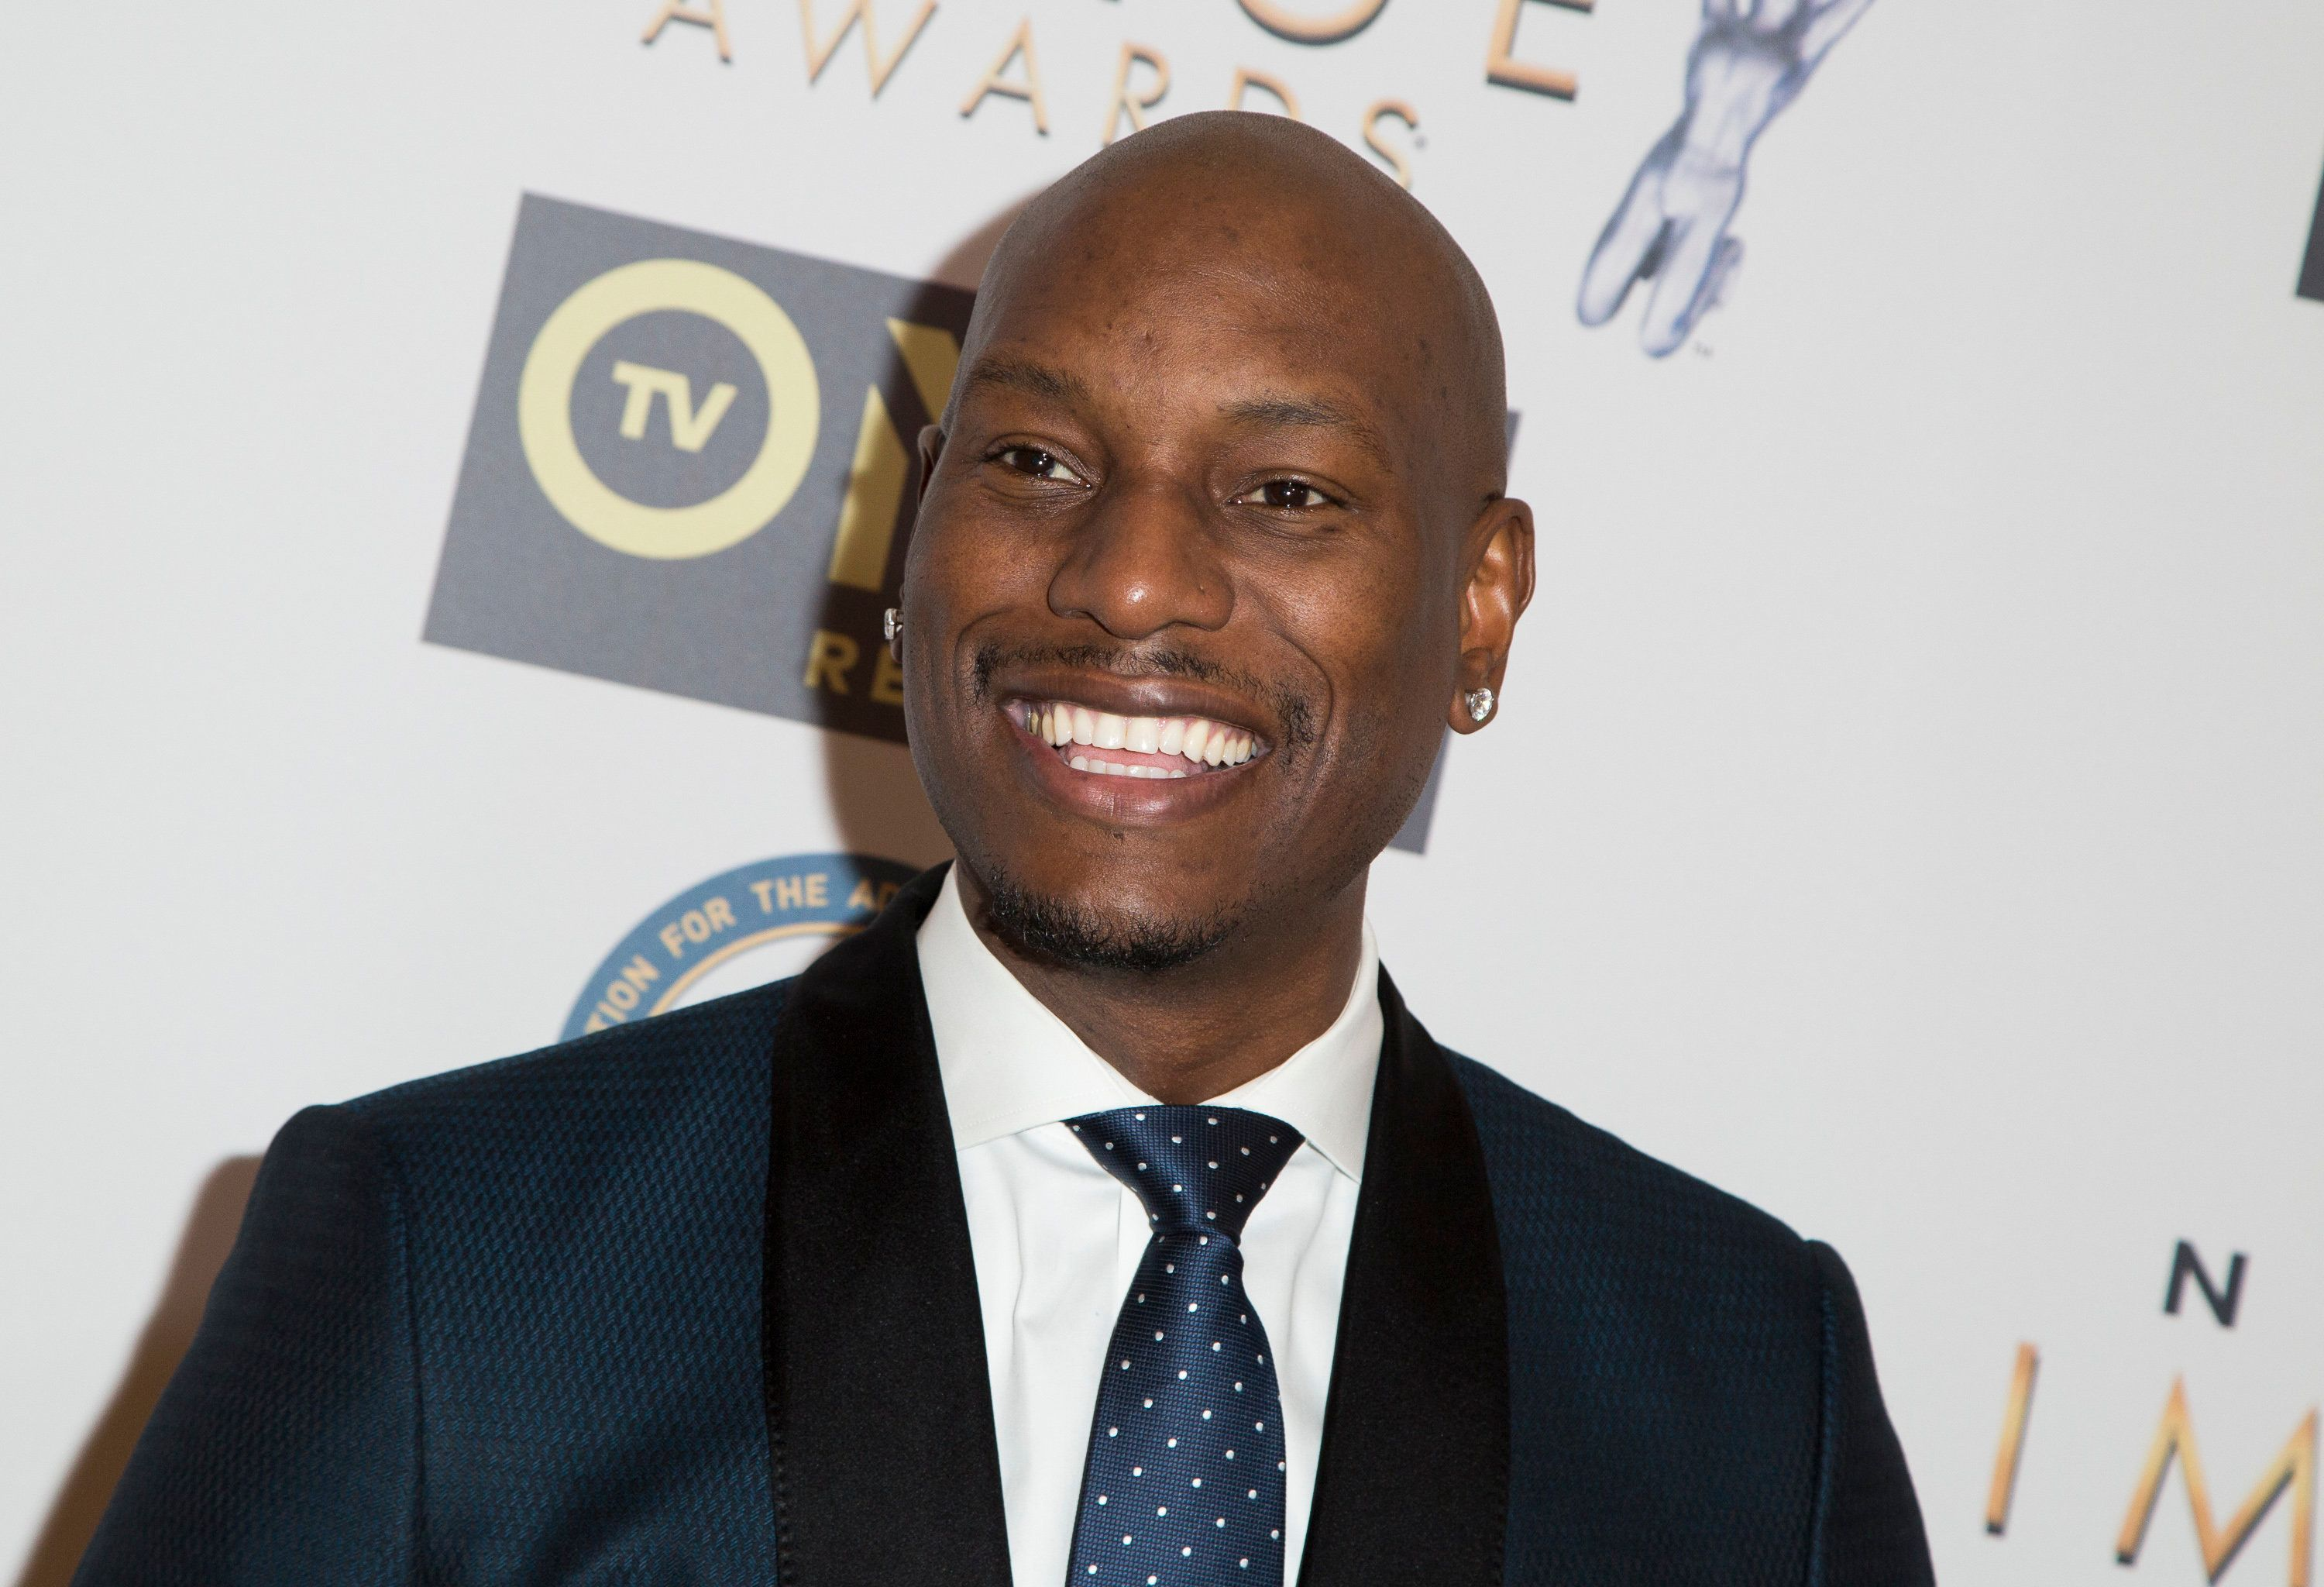 BEVERLY HILLS, CA - JANUARY 23:  Singer/Actor Tyrese Gibson attends the 47th NAACP Image Awards Nominees' luncheon at The Beverly Hilton Hotel on January 23, 2016 in Beverly Hills, California.  (Photo by Vincent Sandoval/FilmMagic)